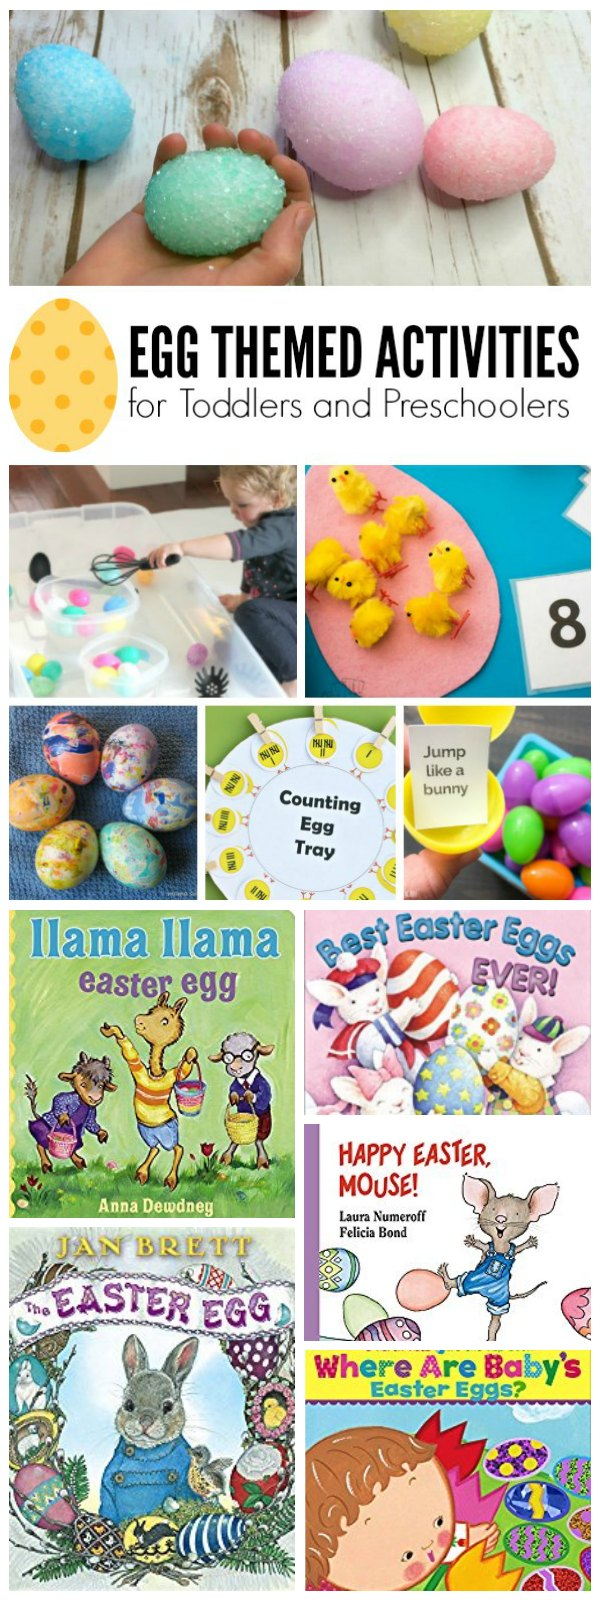 Egg Themed Books and Activities for Preschoolers and Toddlers